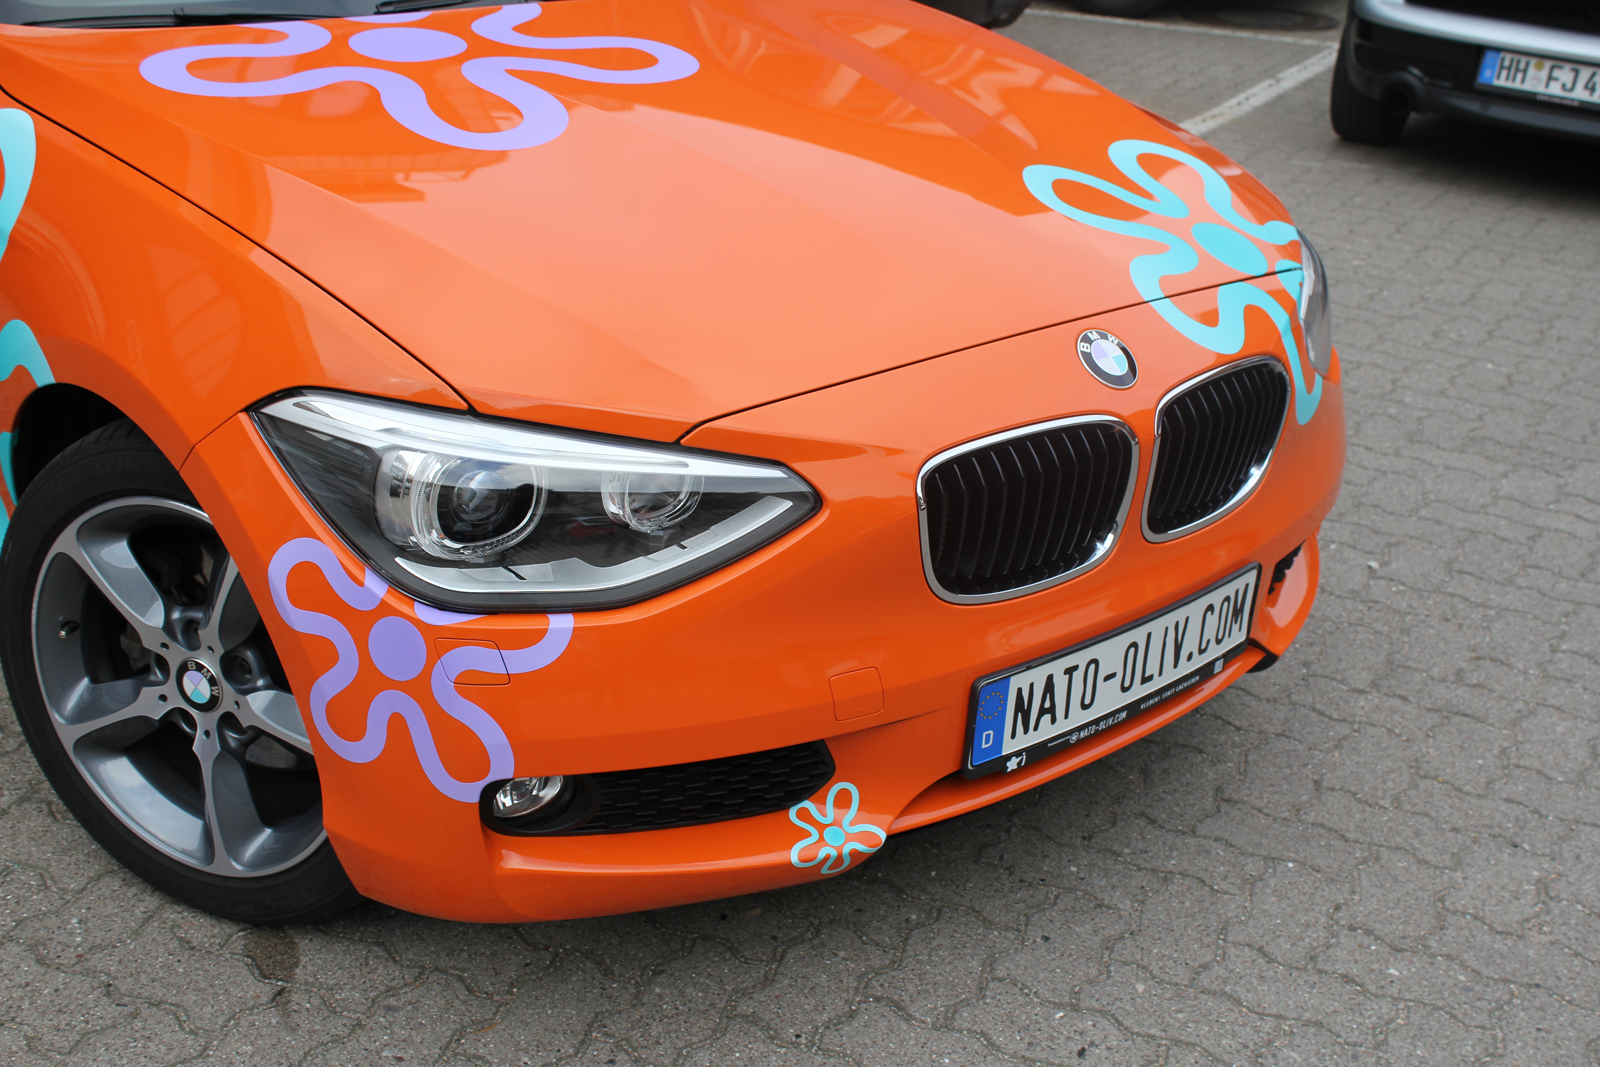 BMW_1ER_CAR-WRAPPING_ORANGE_GLANZ_FOLIE_BLUMEN_06